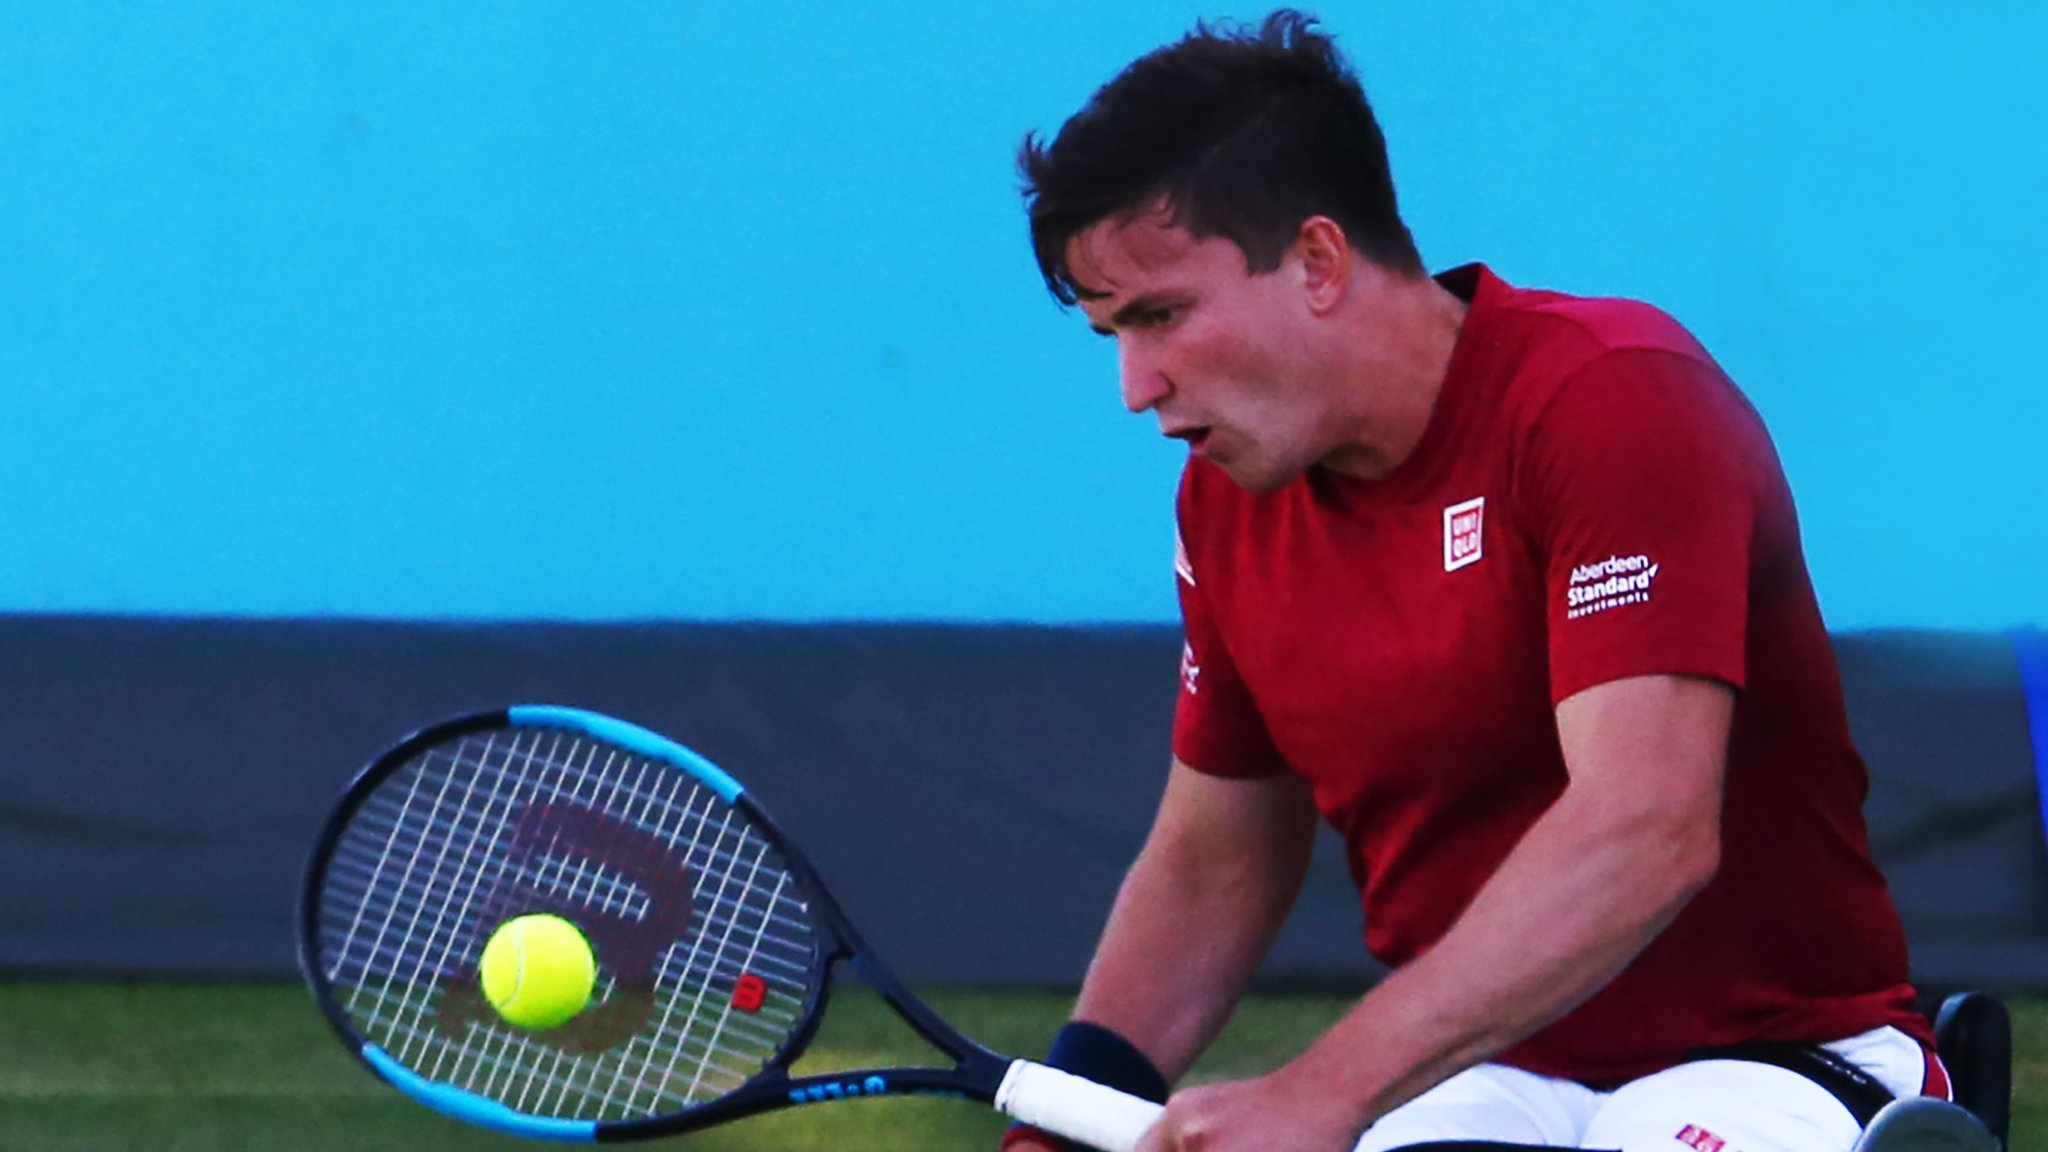 Queen's Club: Gordon Reid and Alfie Hewett lose Fever-Tree Championships singles semis